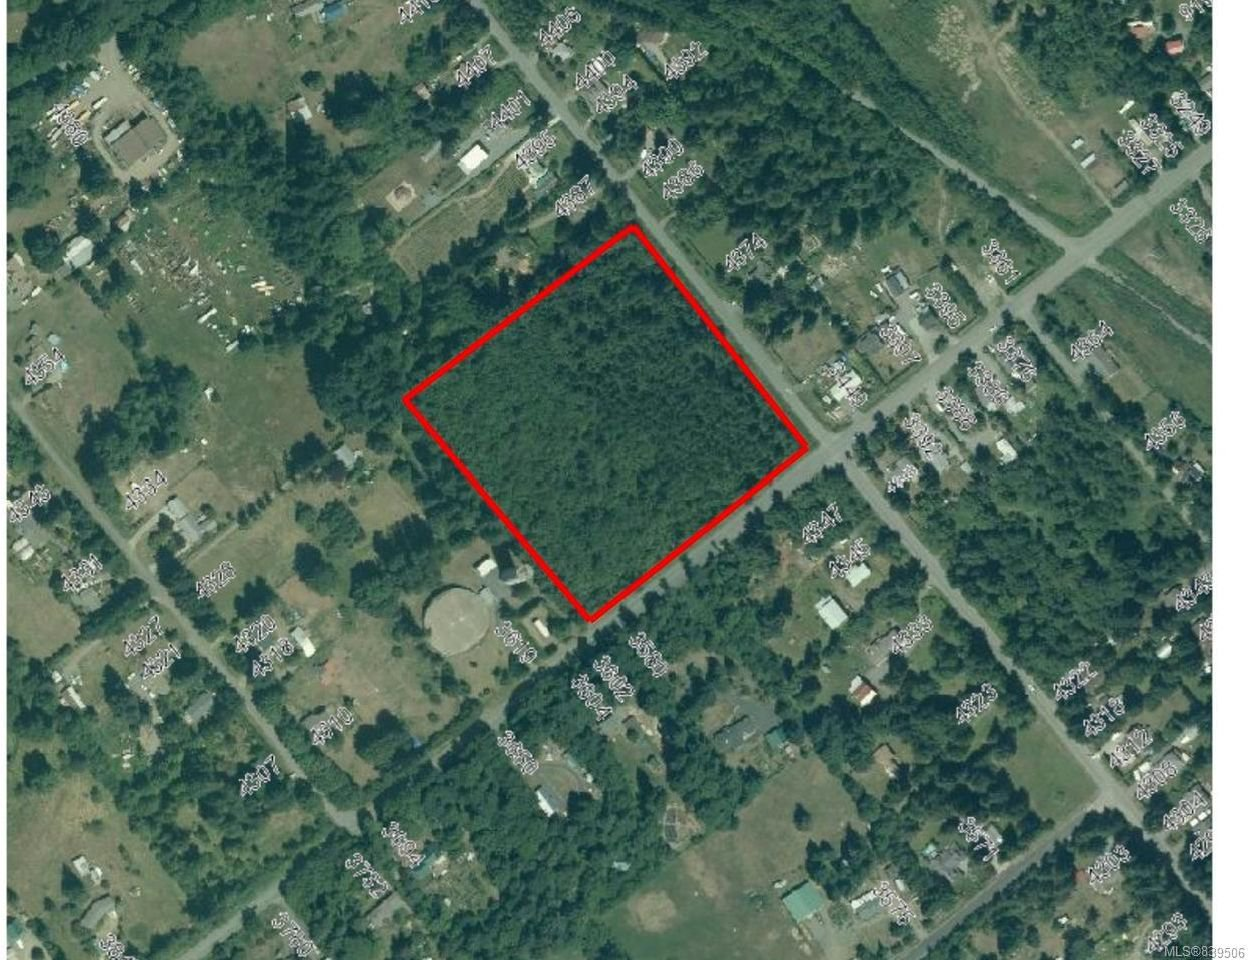 Main Photo: Lot 227 Lake Trail Rd in COURTENAY: CV Courtenay West Land for sale (Comox Valley)  : MLS®# 839506